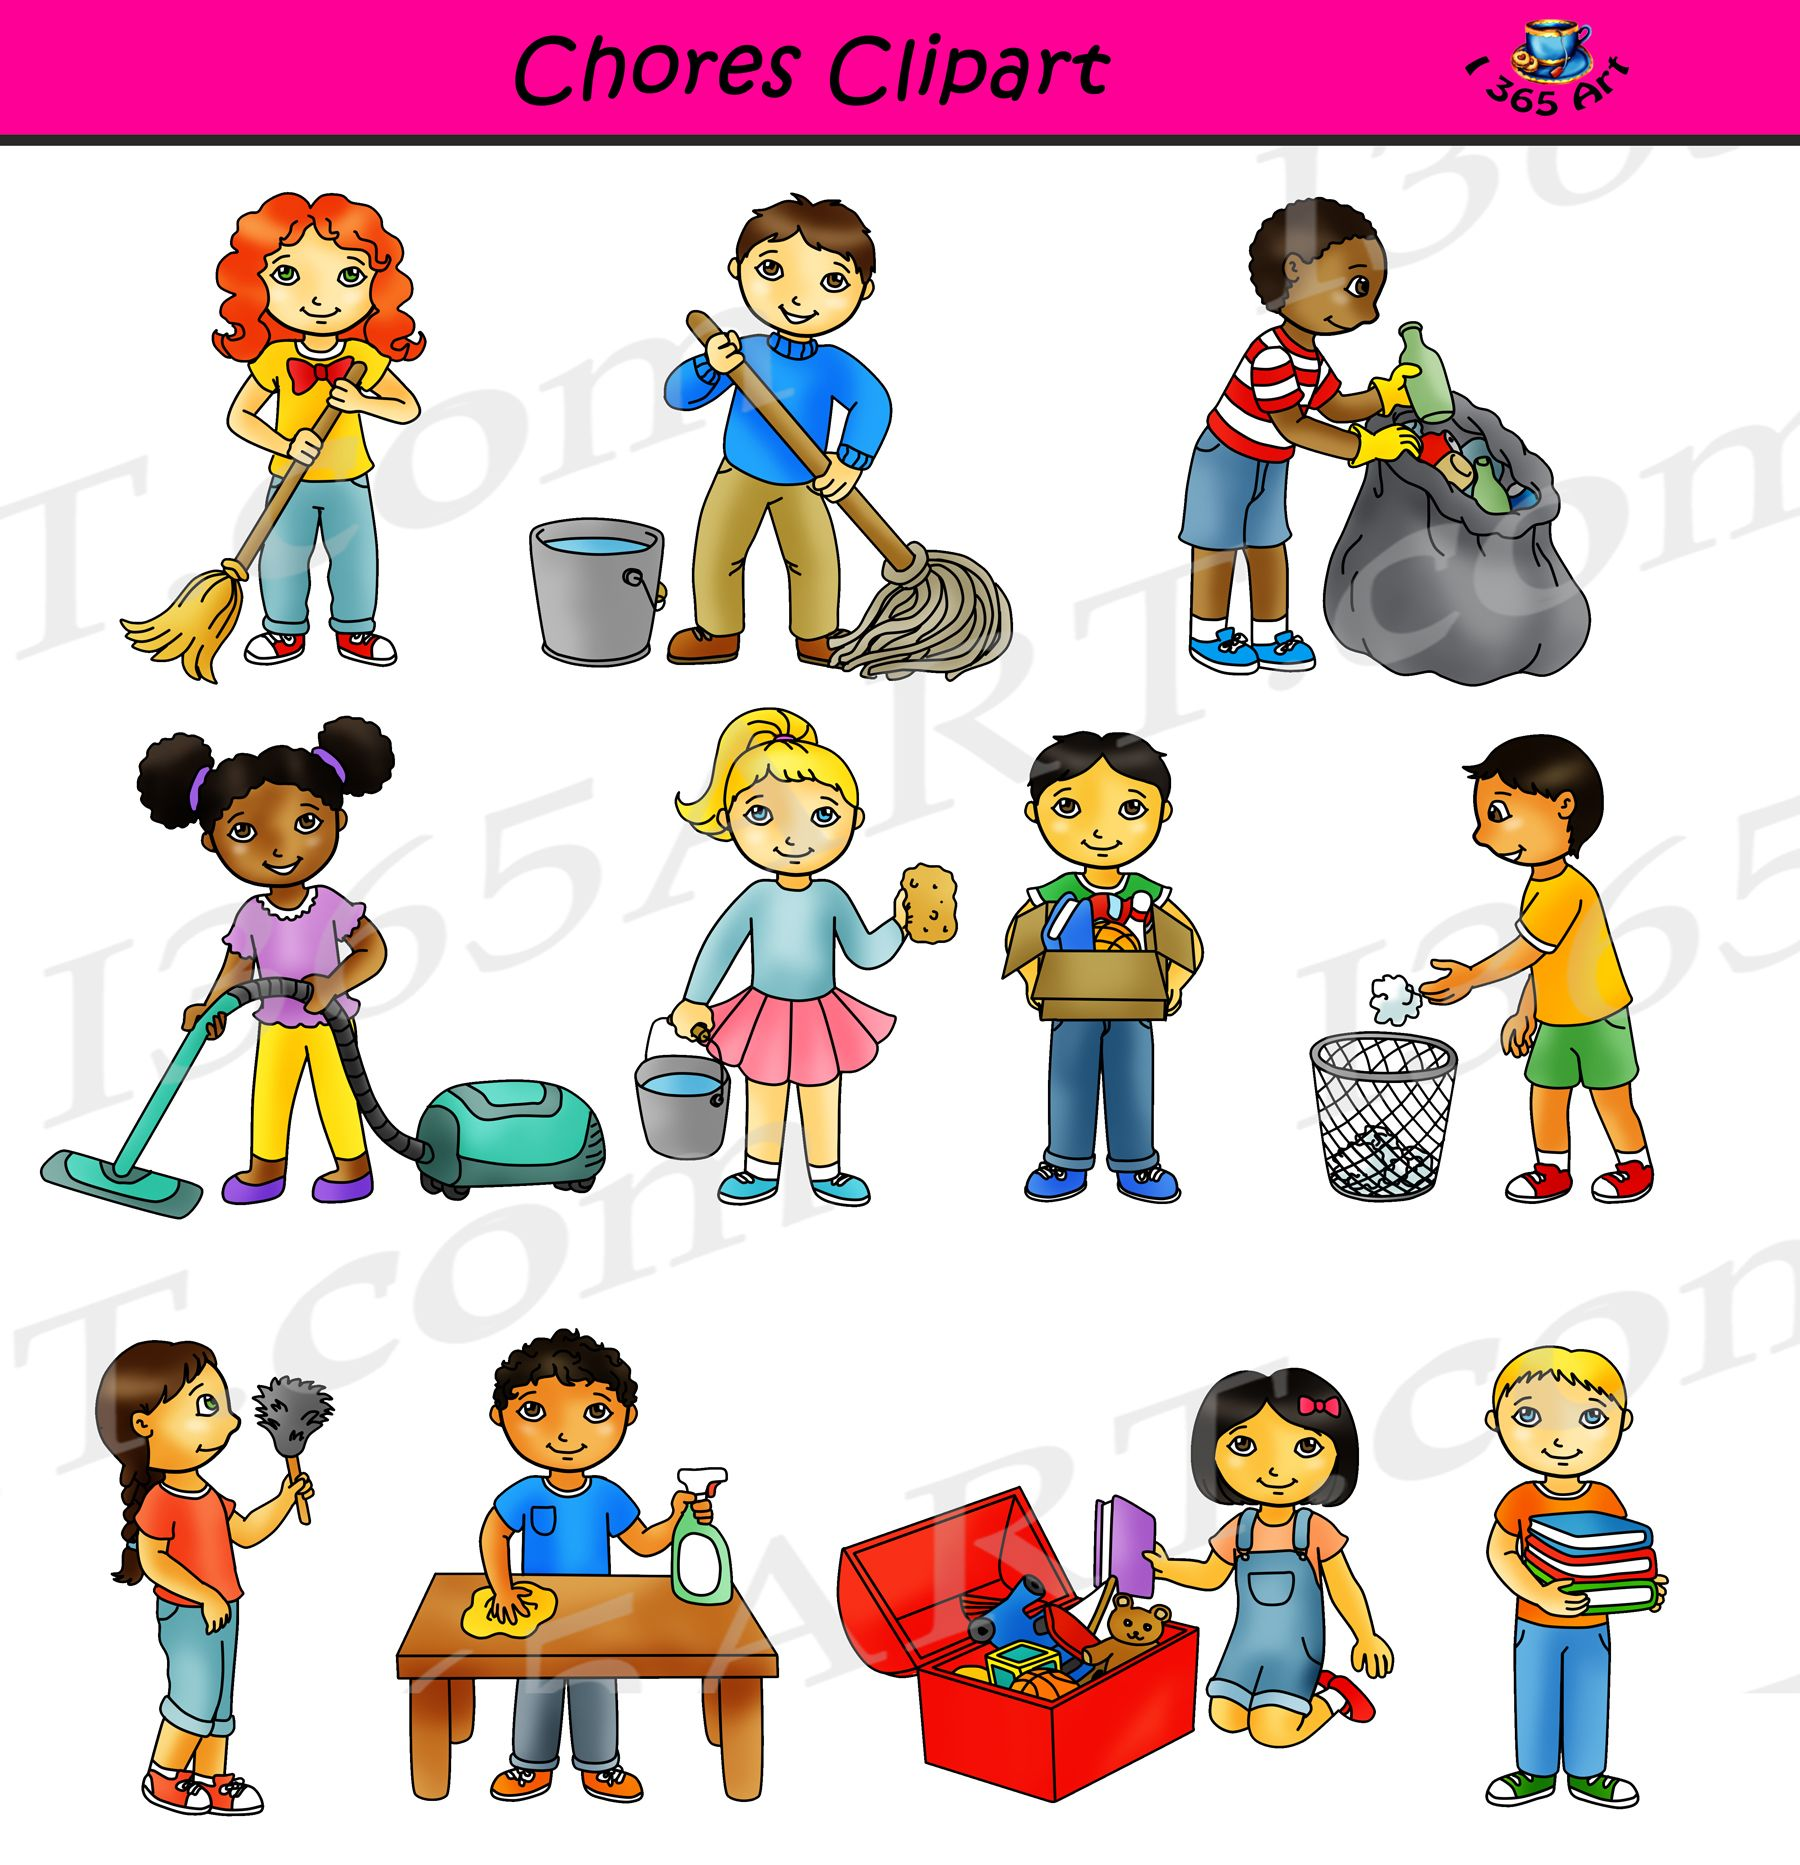 Chores Clipart Classroom Cleaning Commercial Graphics Clean